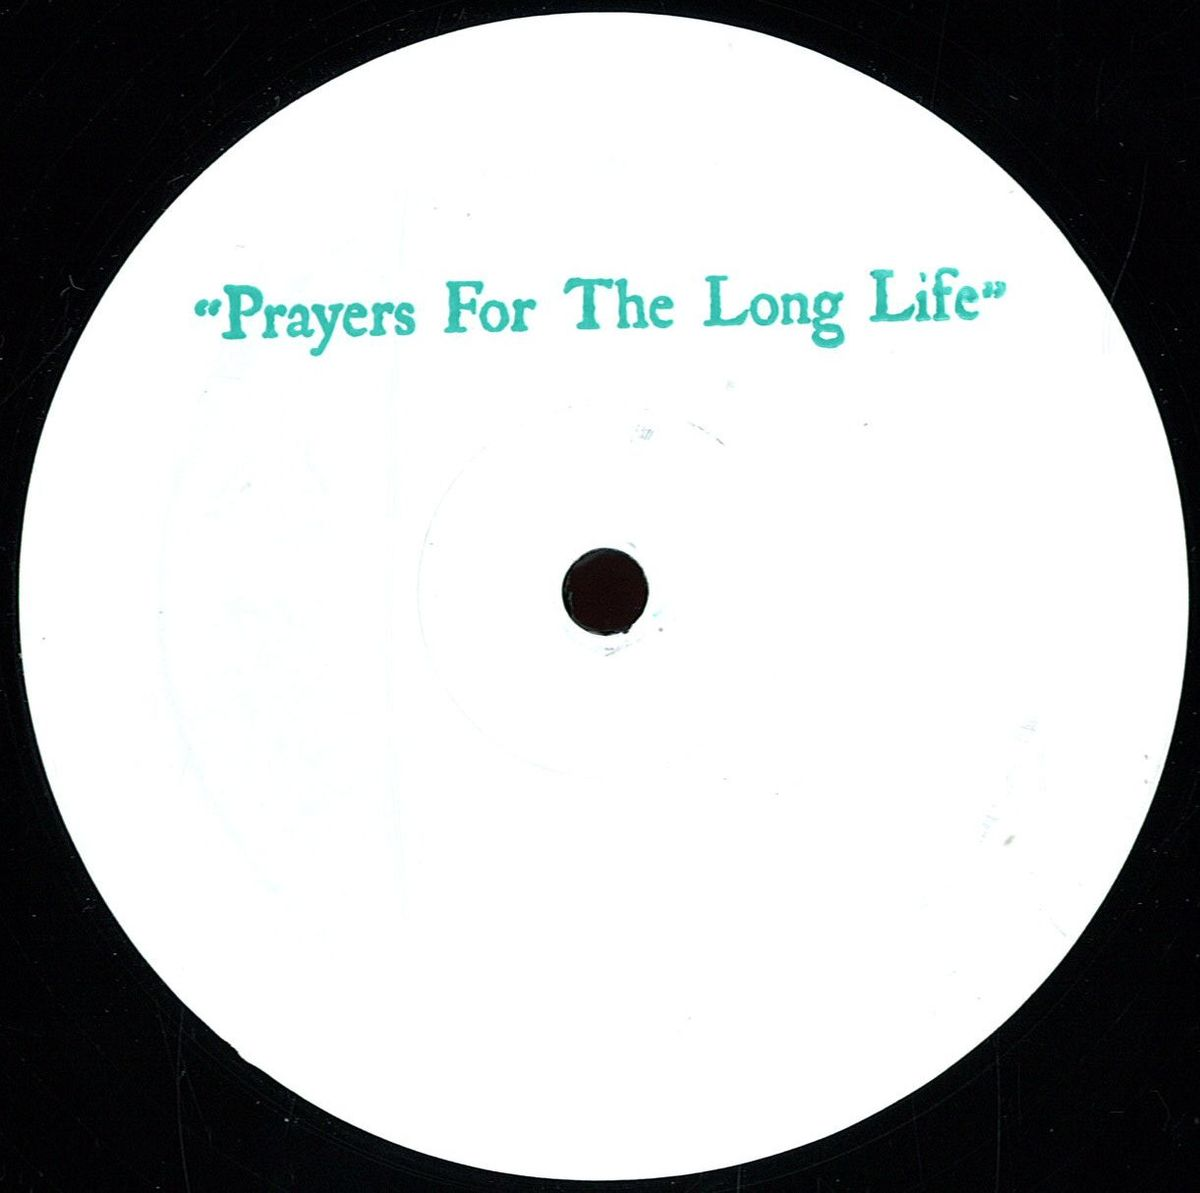 Dj F - Acid Future Overdose (Prayers For The Long Life)